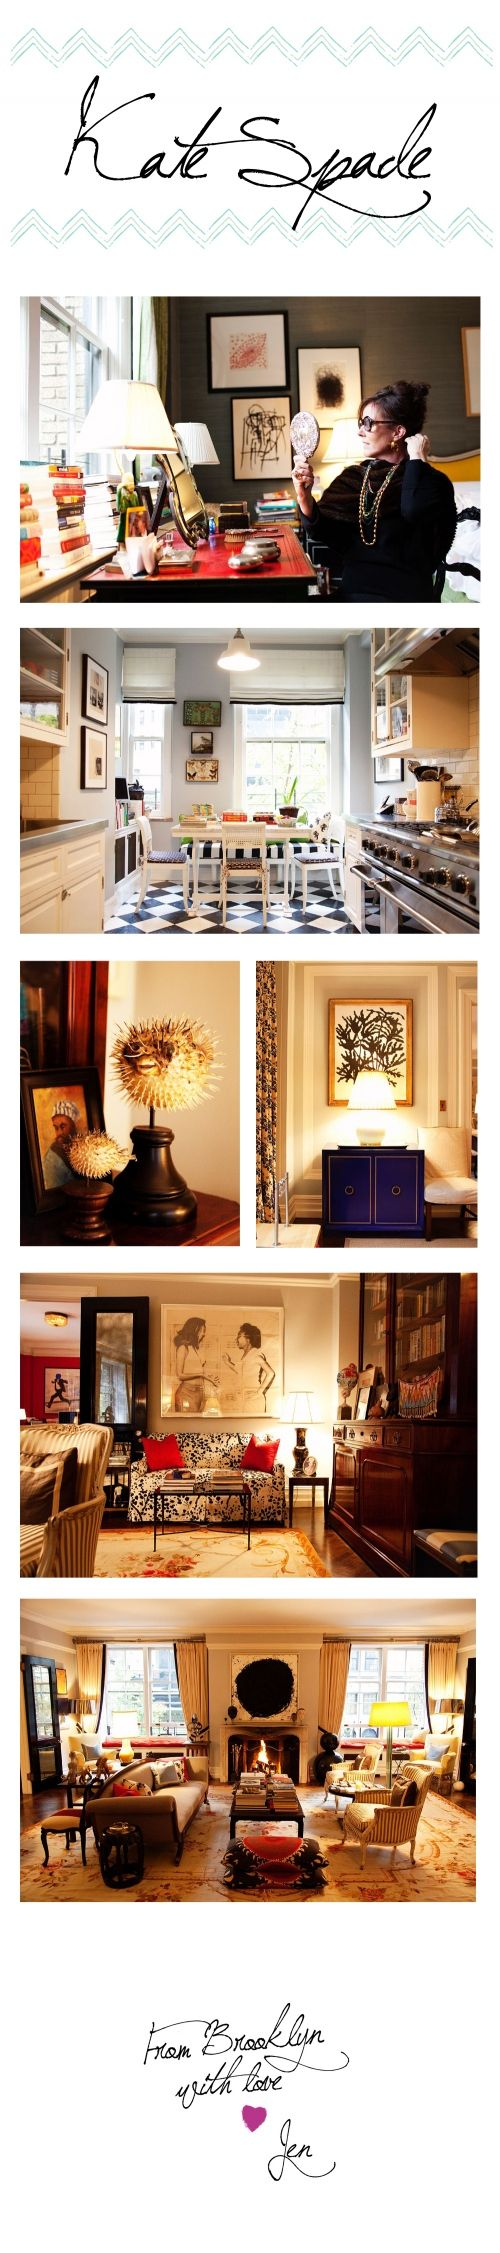 My Style… Kate Spade's Home # @Lacey Sutherland look lace!! a blowfish!! it can be a style!